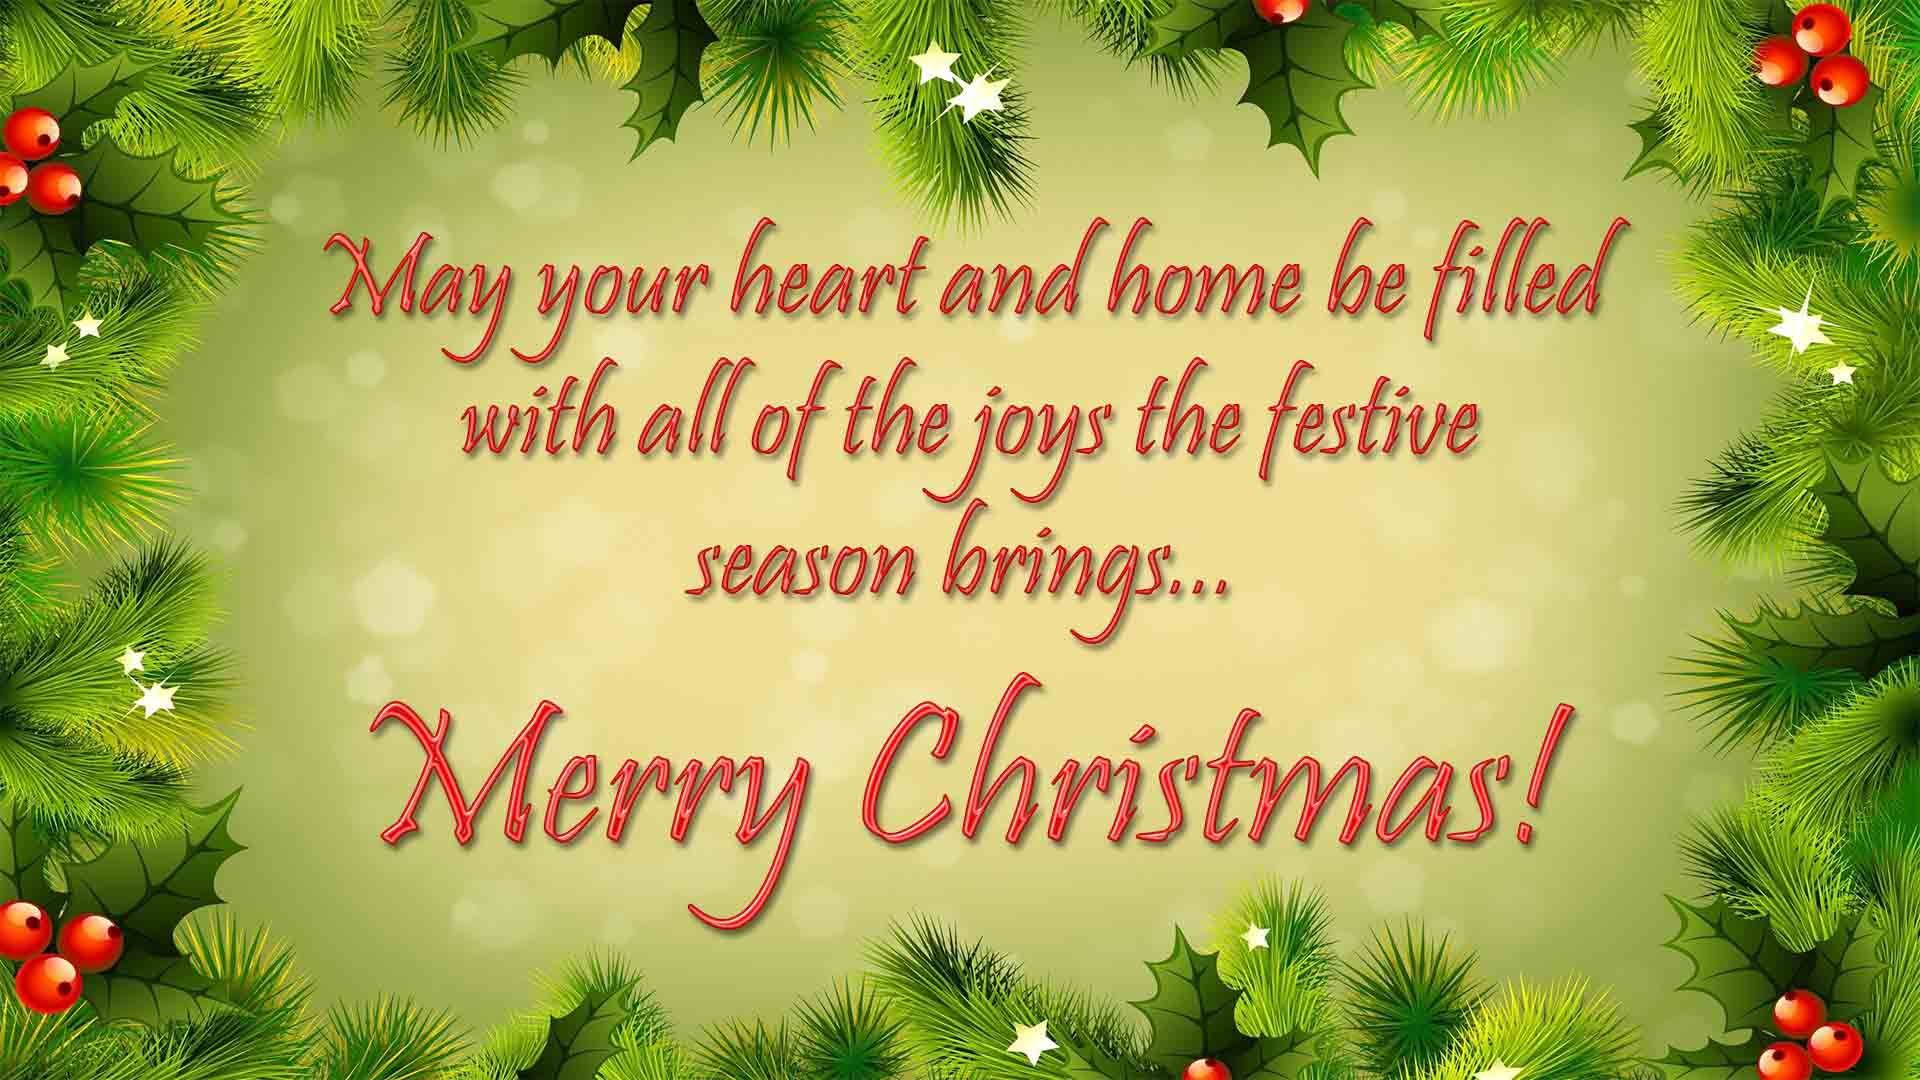 Merry Christmas Greetings & Messages HD Images Free Download